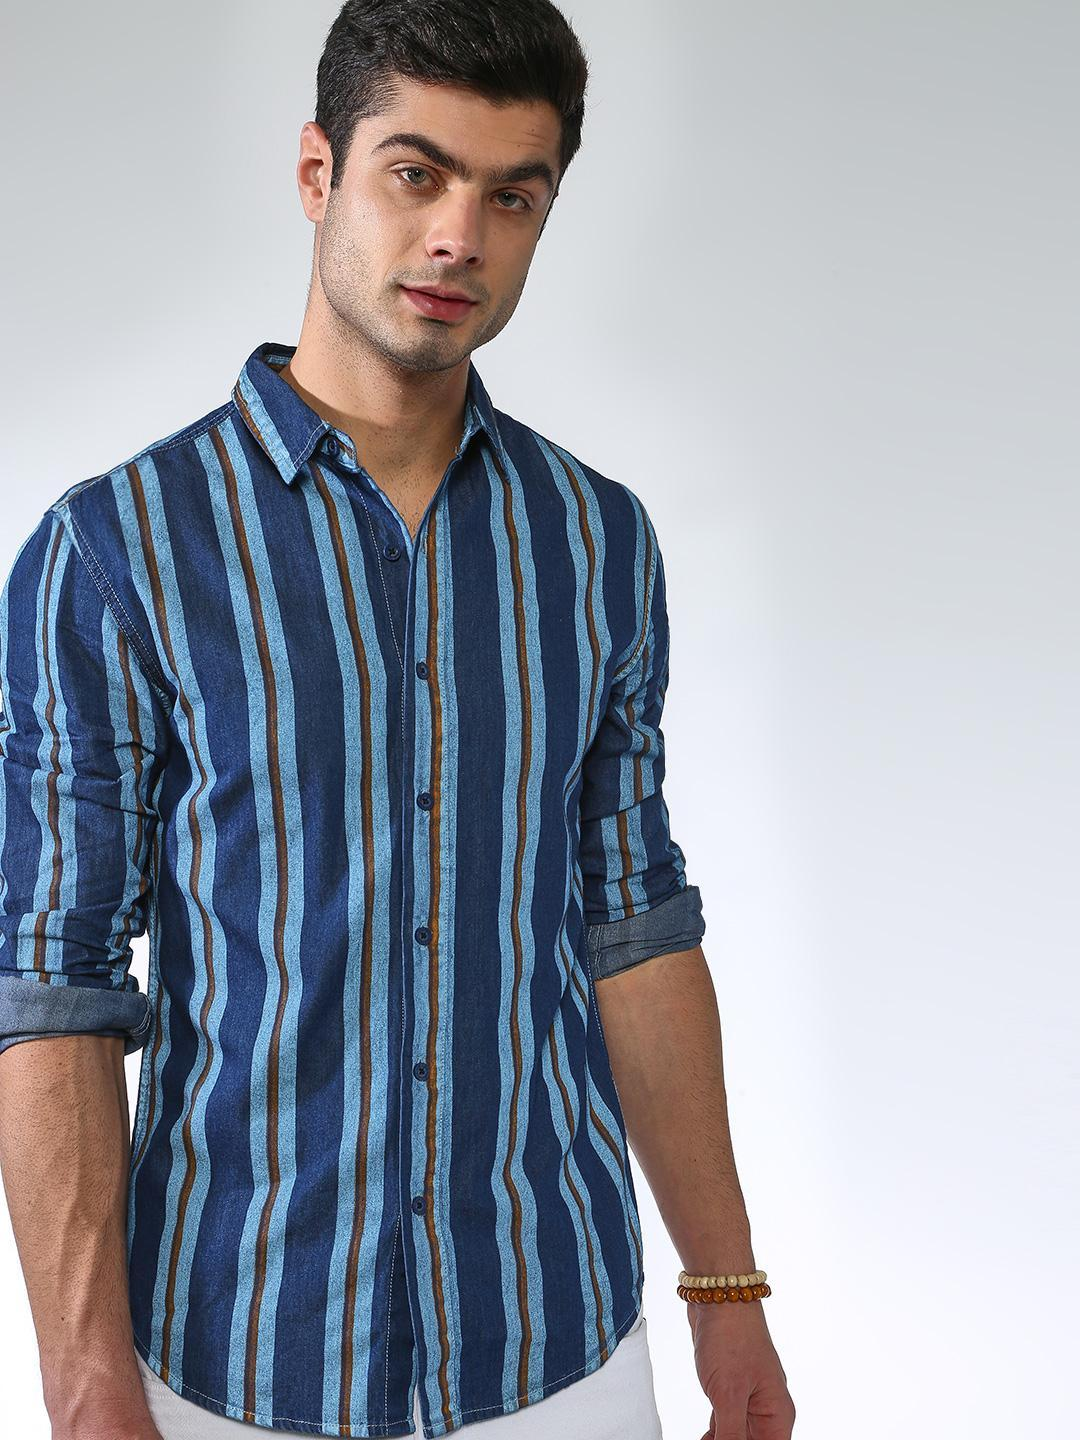 Blue Saint Navy Vertical Stripe Long Sleeve Shirt 1